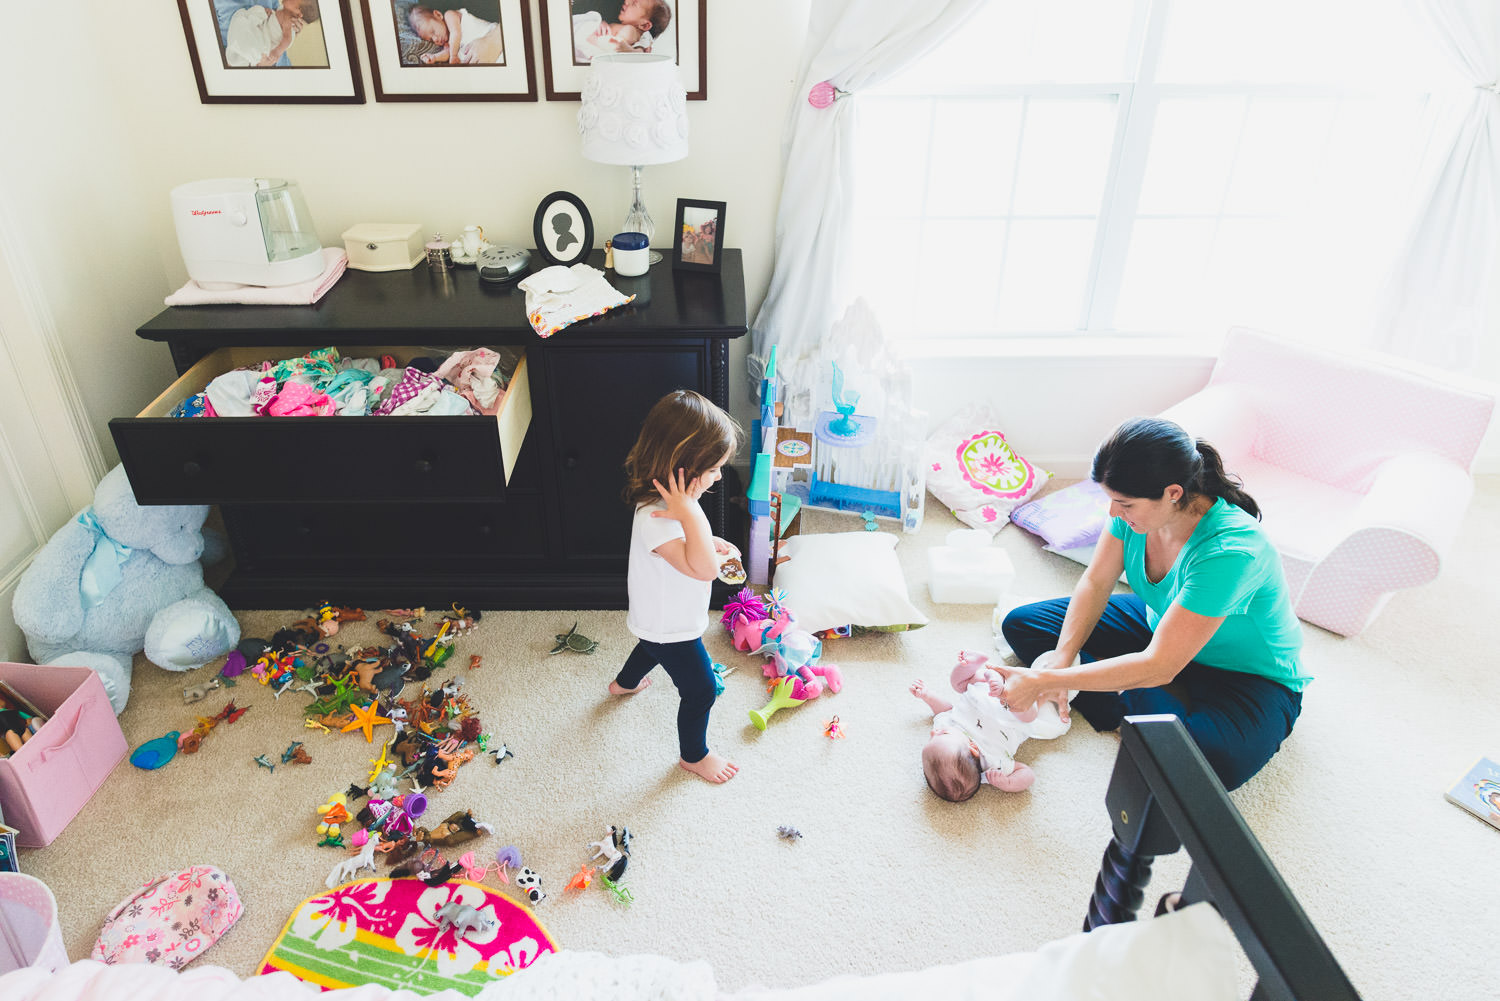 A mom changes her baby's diaper on the kids' bedroom floor.